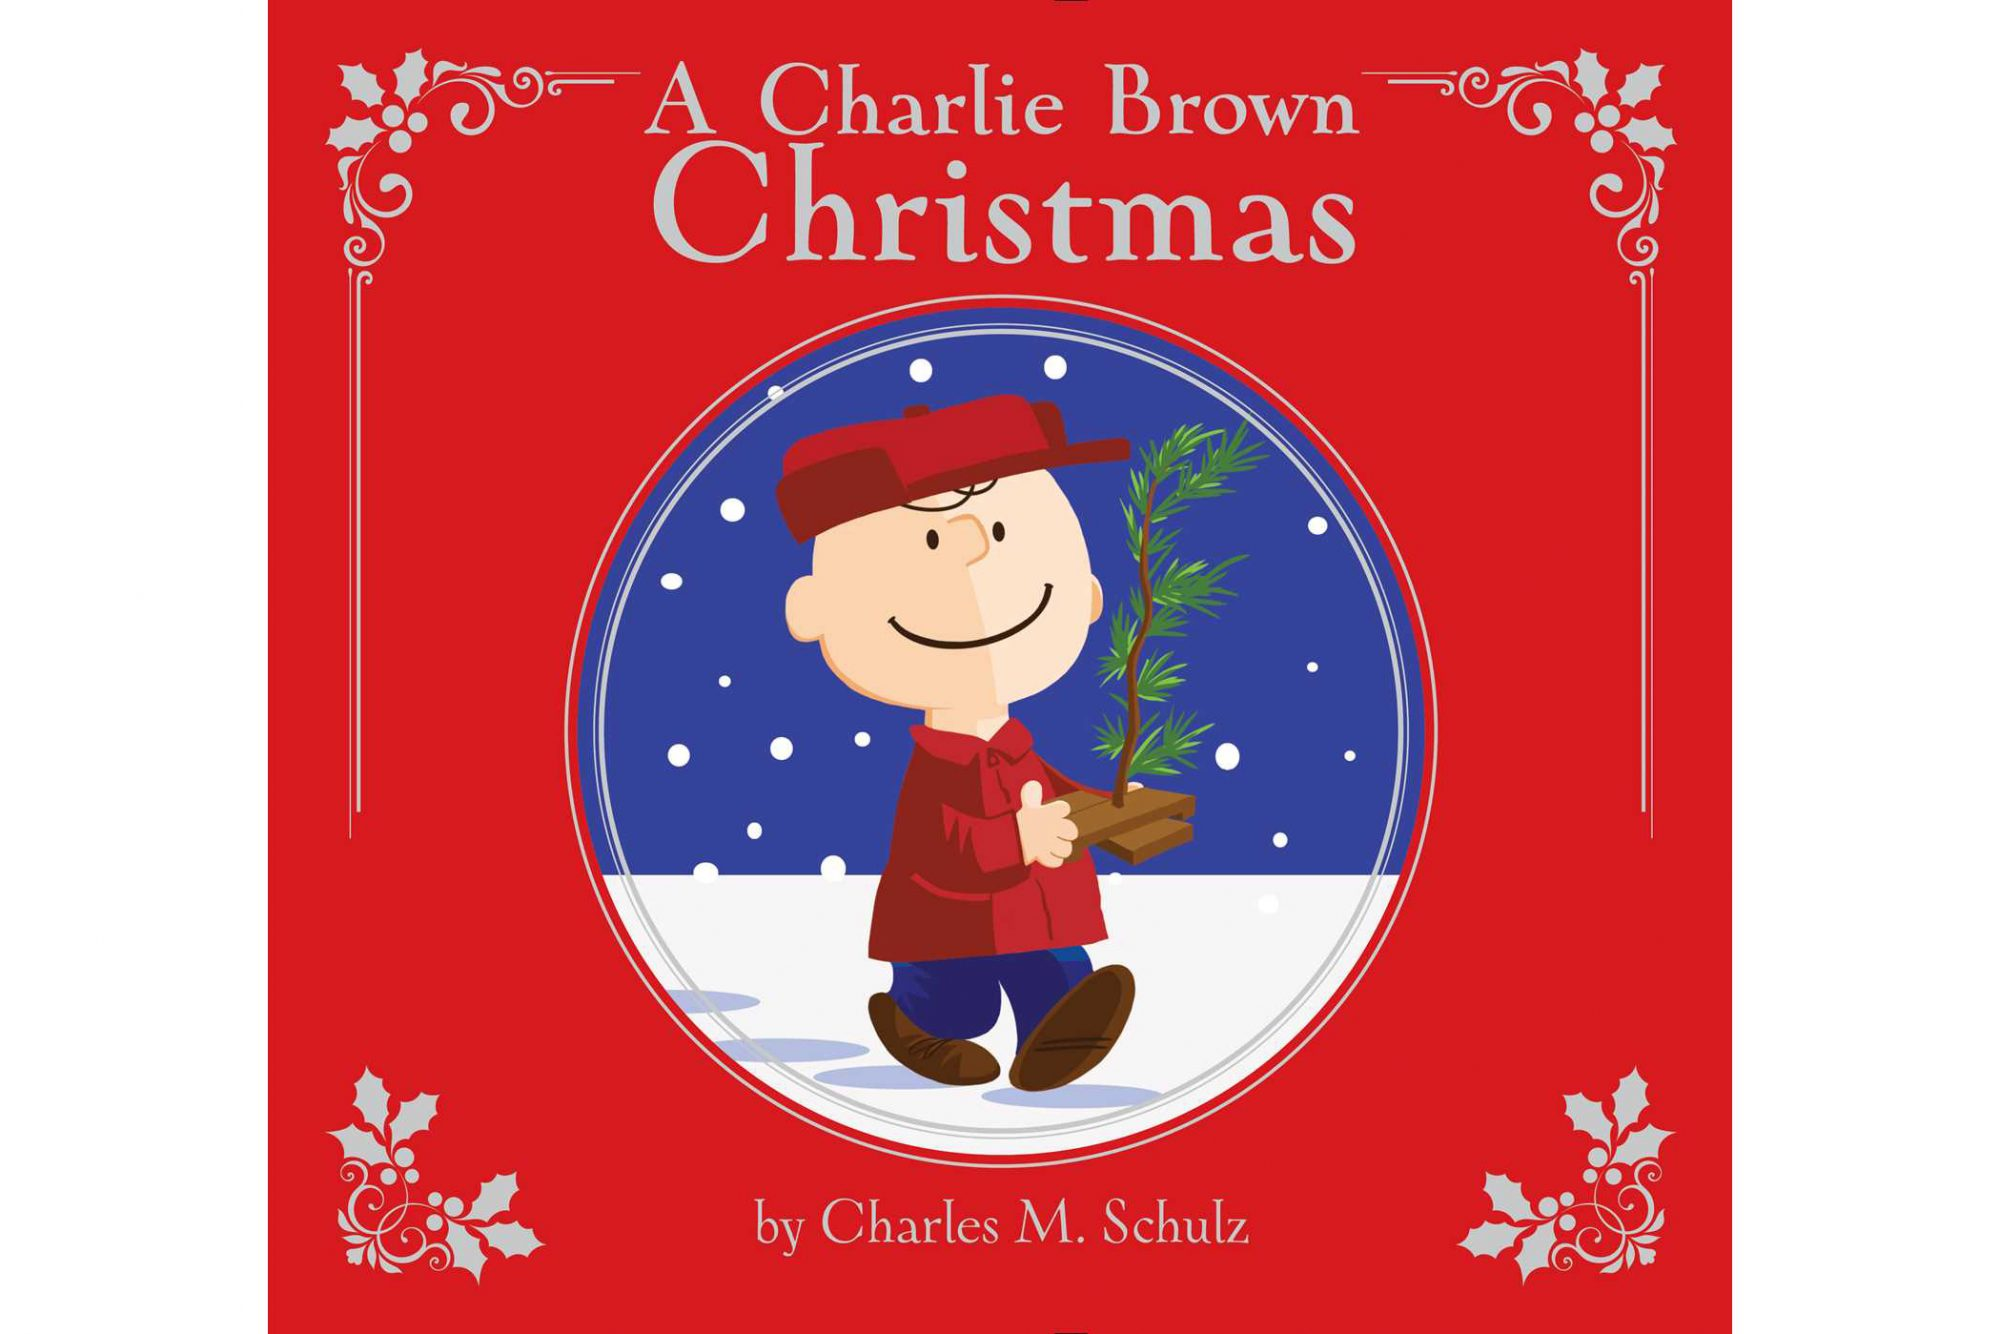 A Charlie Brown Christmas: Deluxe Edition, by Charles M. Schulz and Vicki Scott